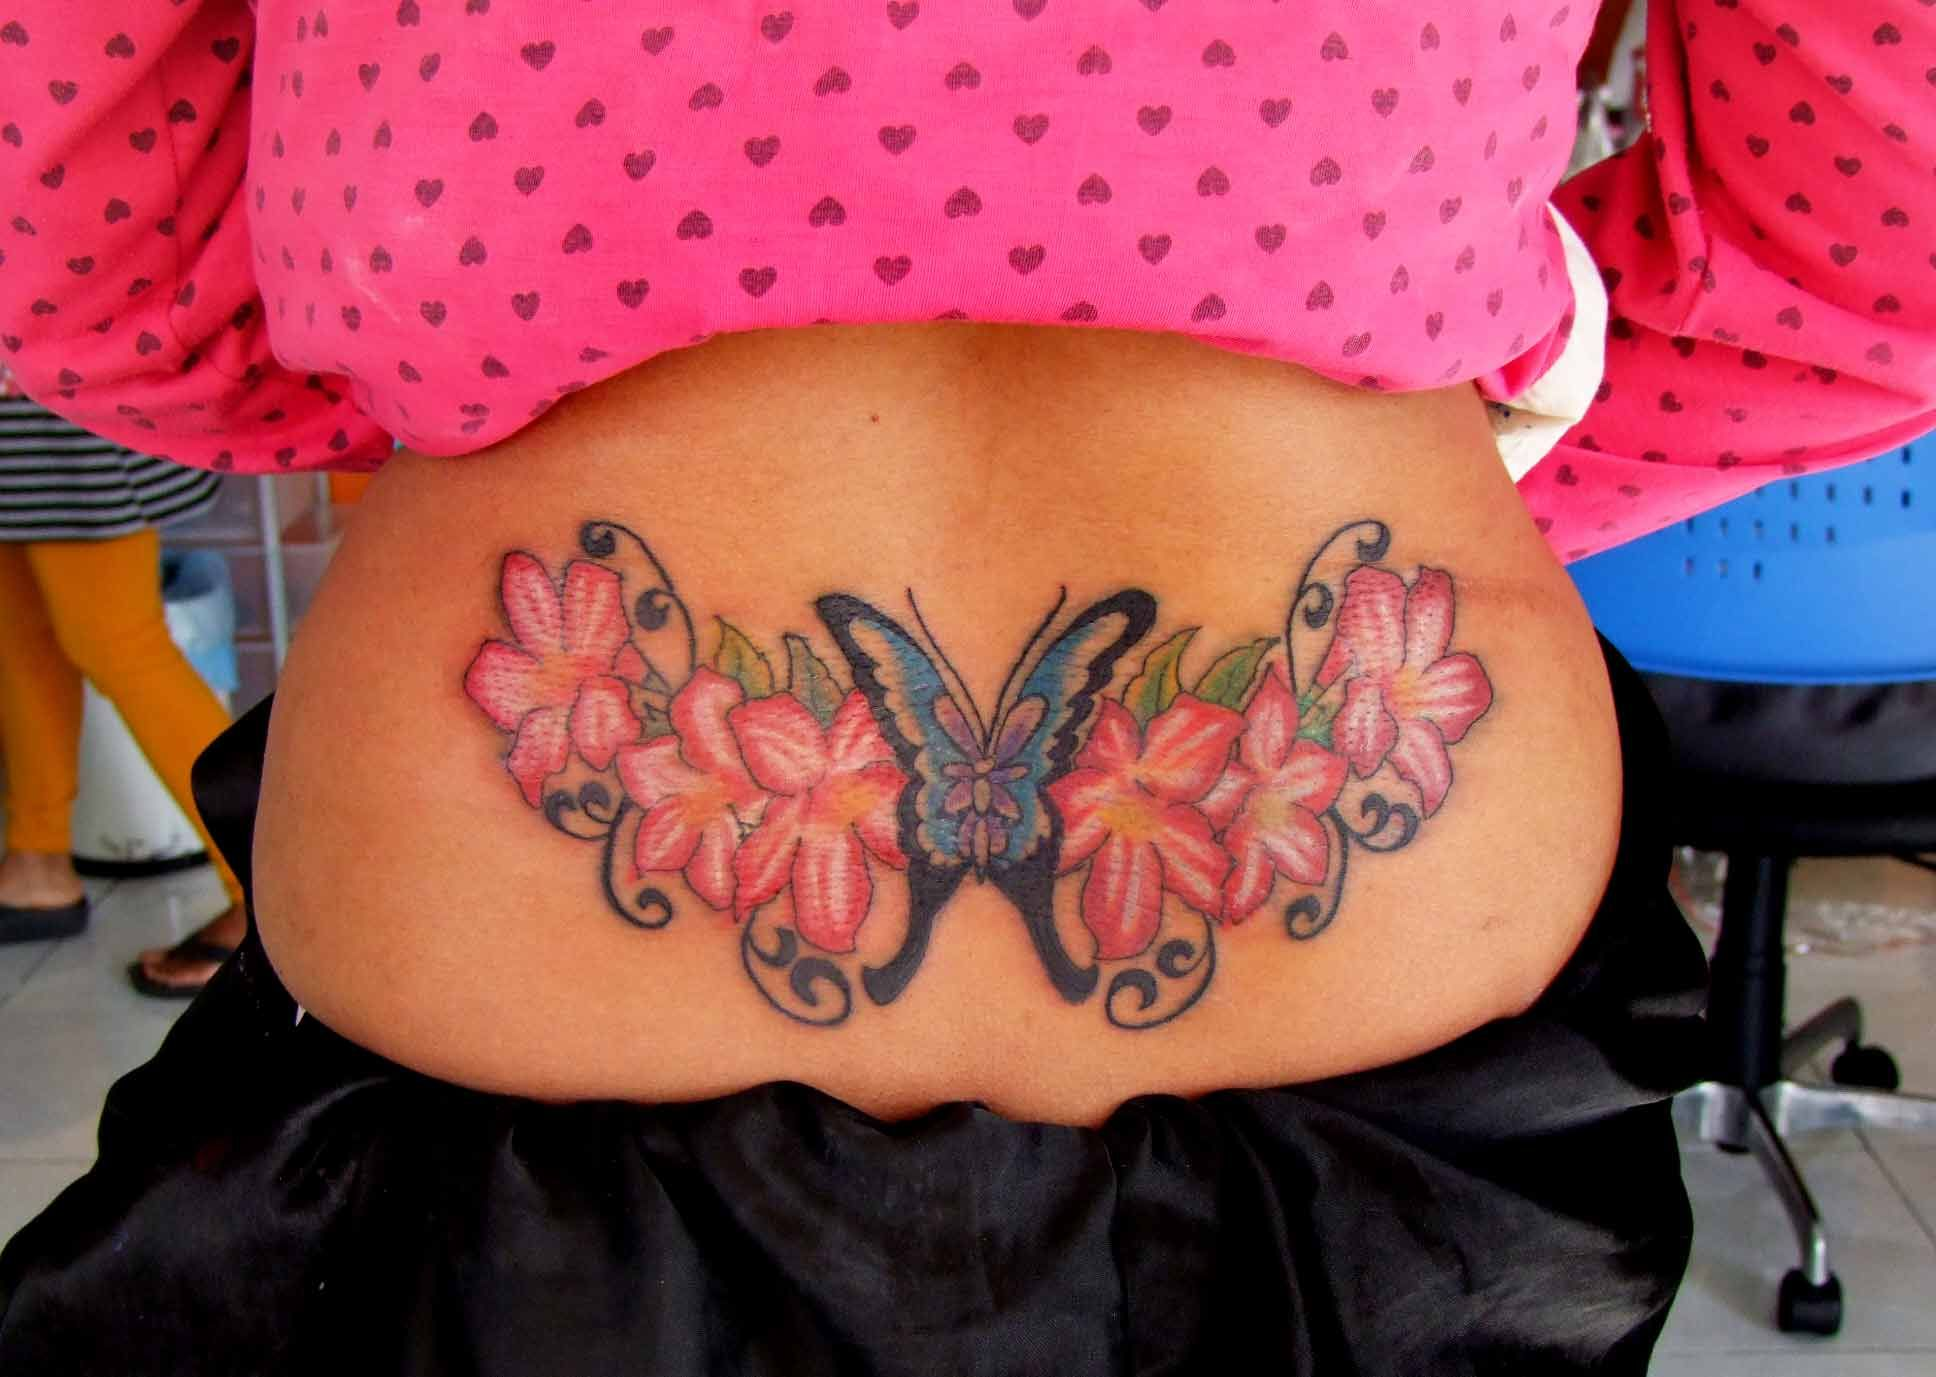 Cute tattoo ideas for lower back lower back butterfly tattoo with flowers  lower back tattooes